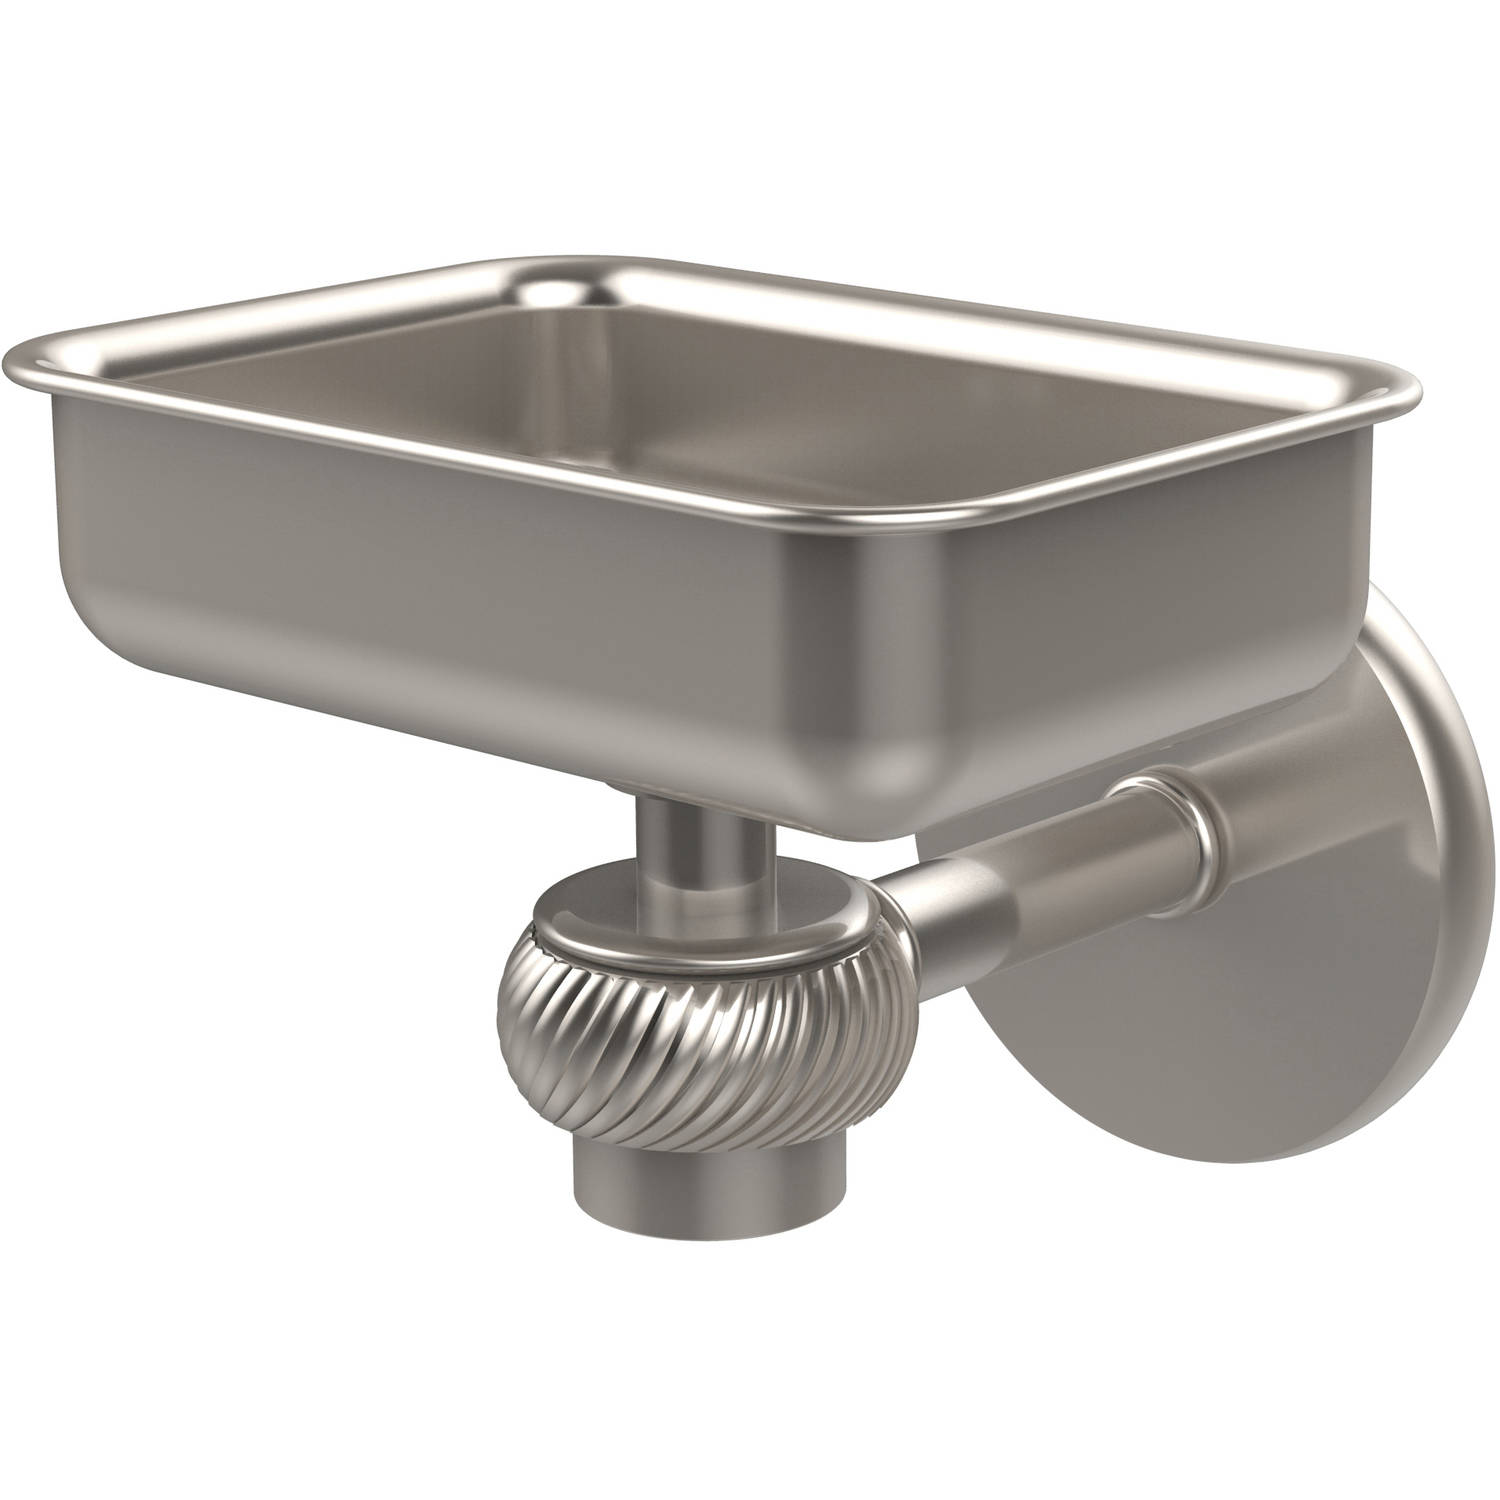 Satellite Orbit One Wall-Mounted Soap Dish with Twisted Accents (Build to Order)